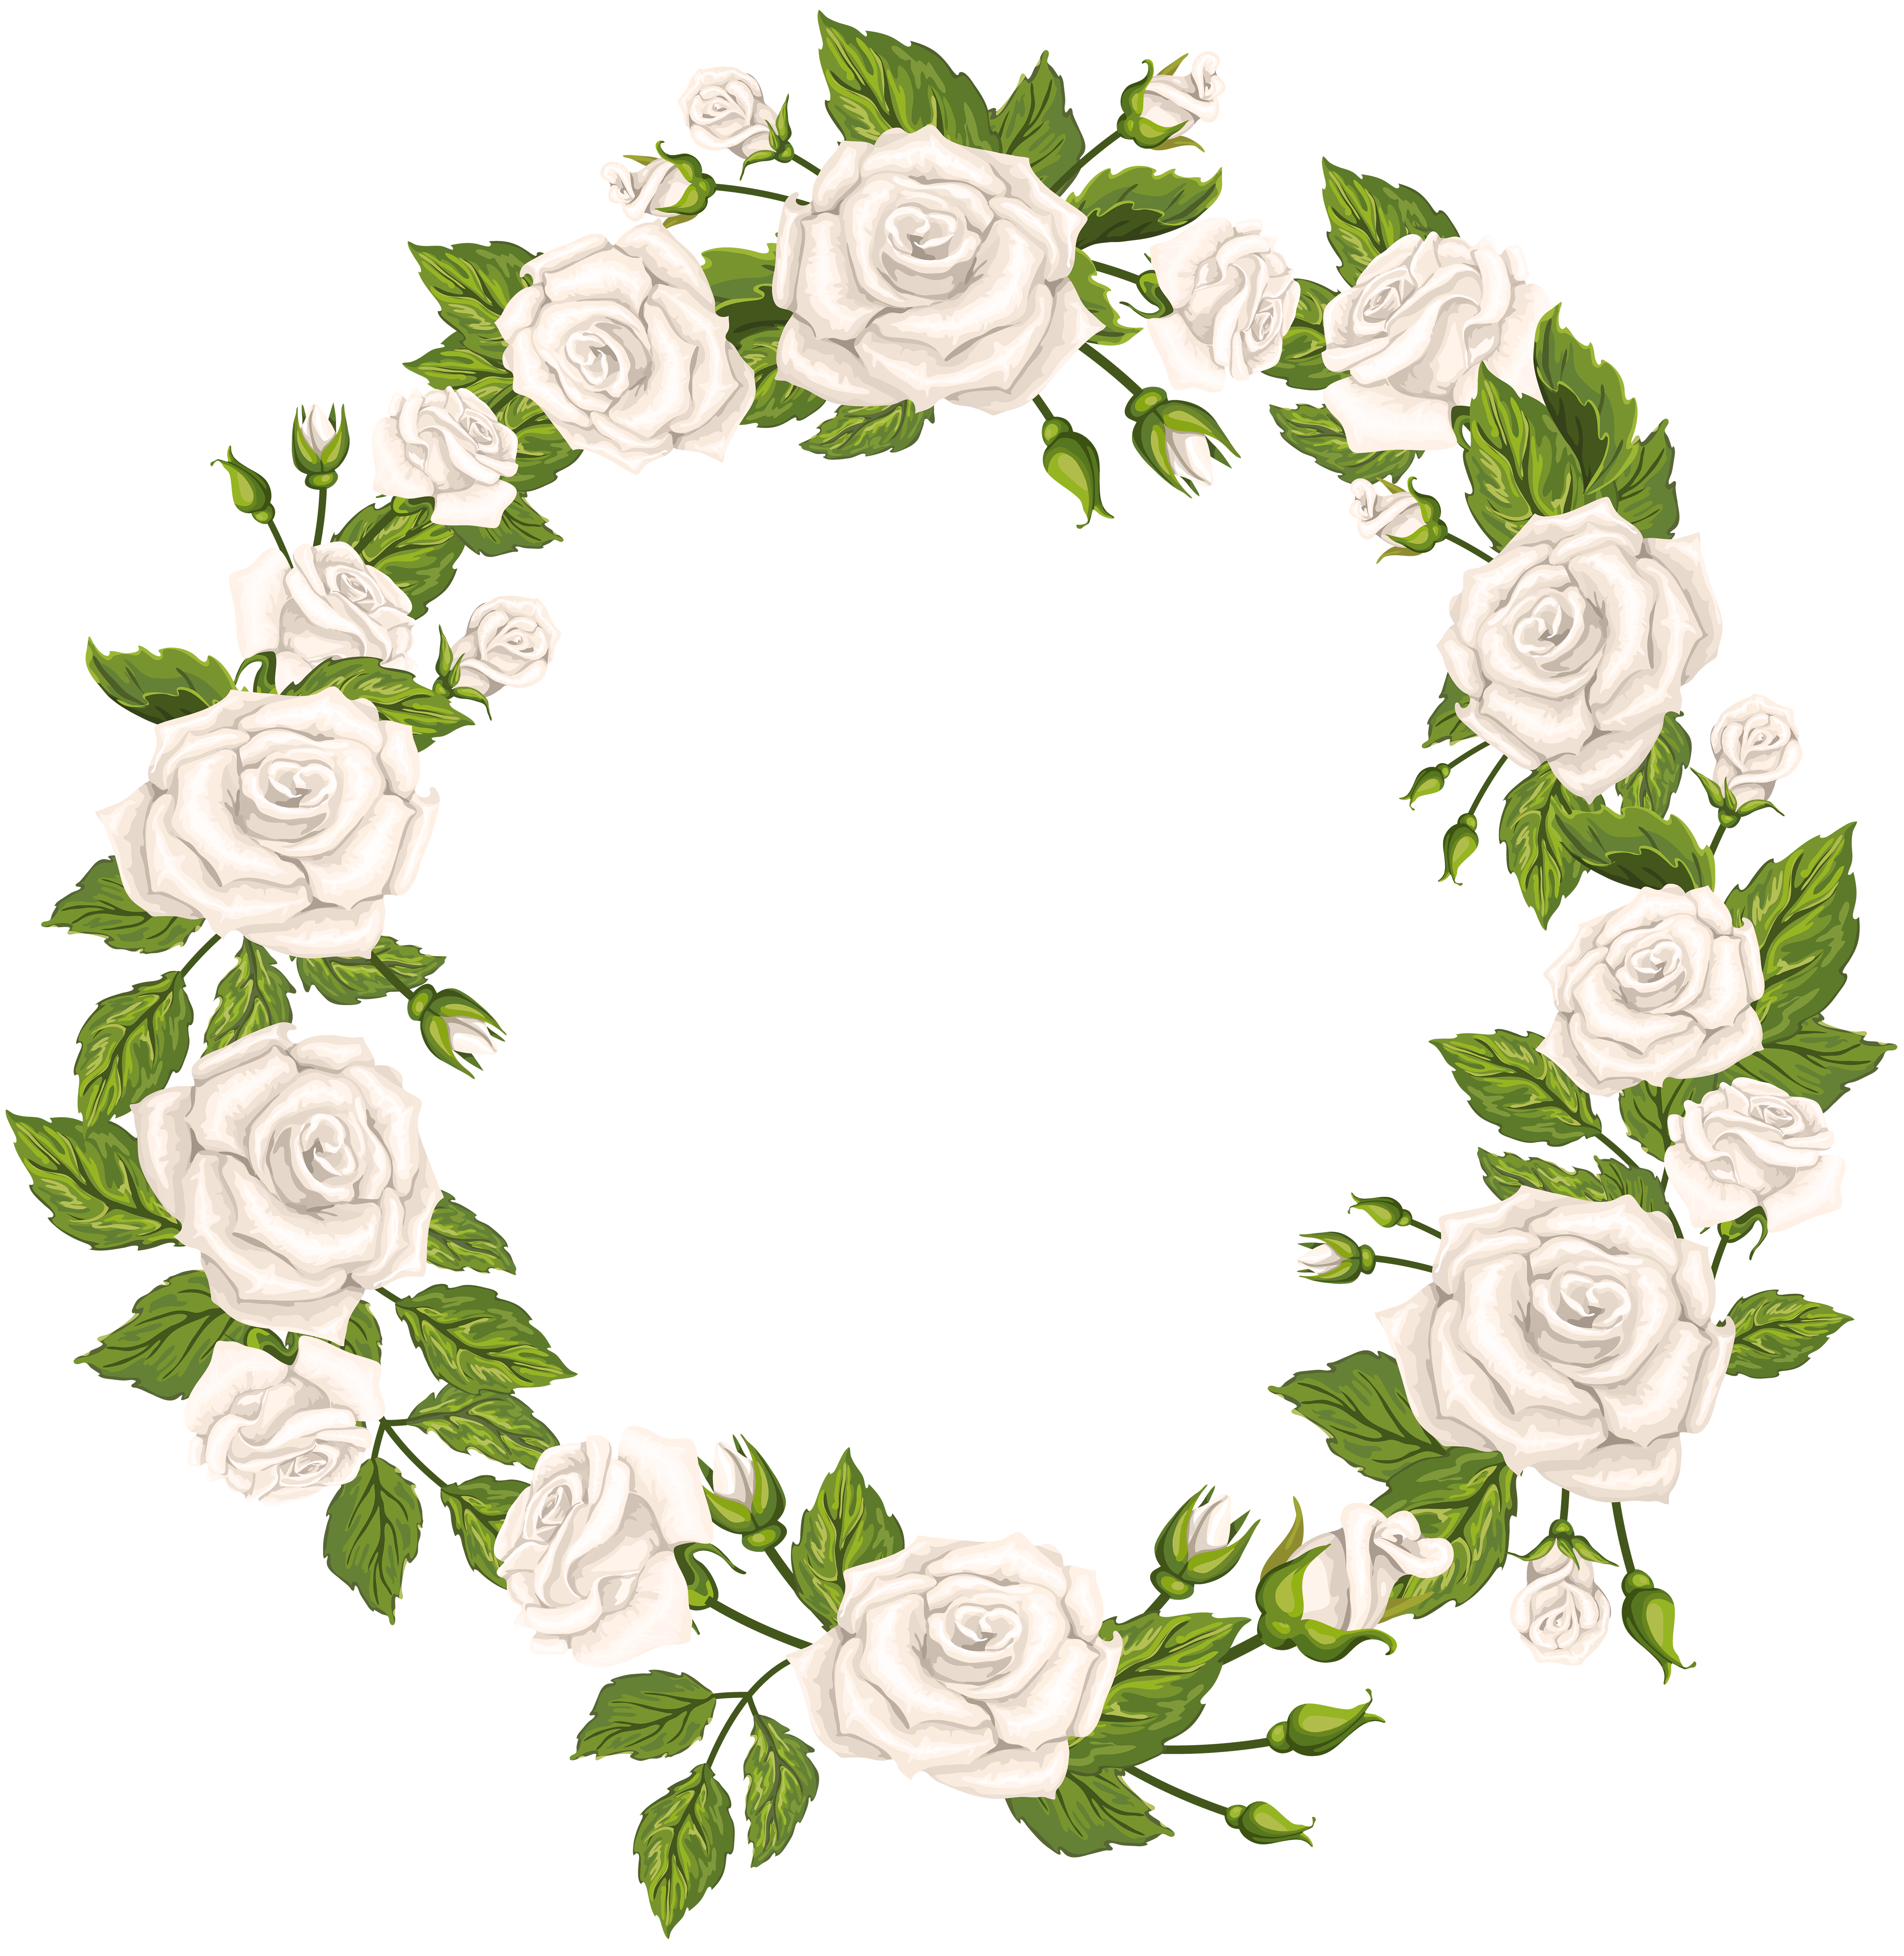 4868x5000 Roses Border White Png Clip Artu200b Gallery Yopriceville